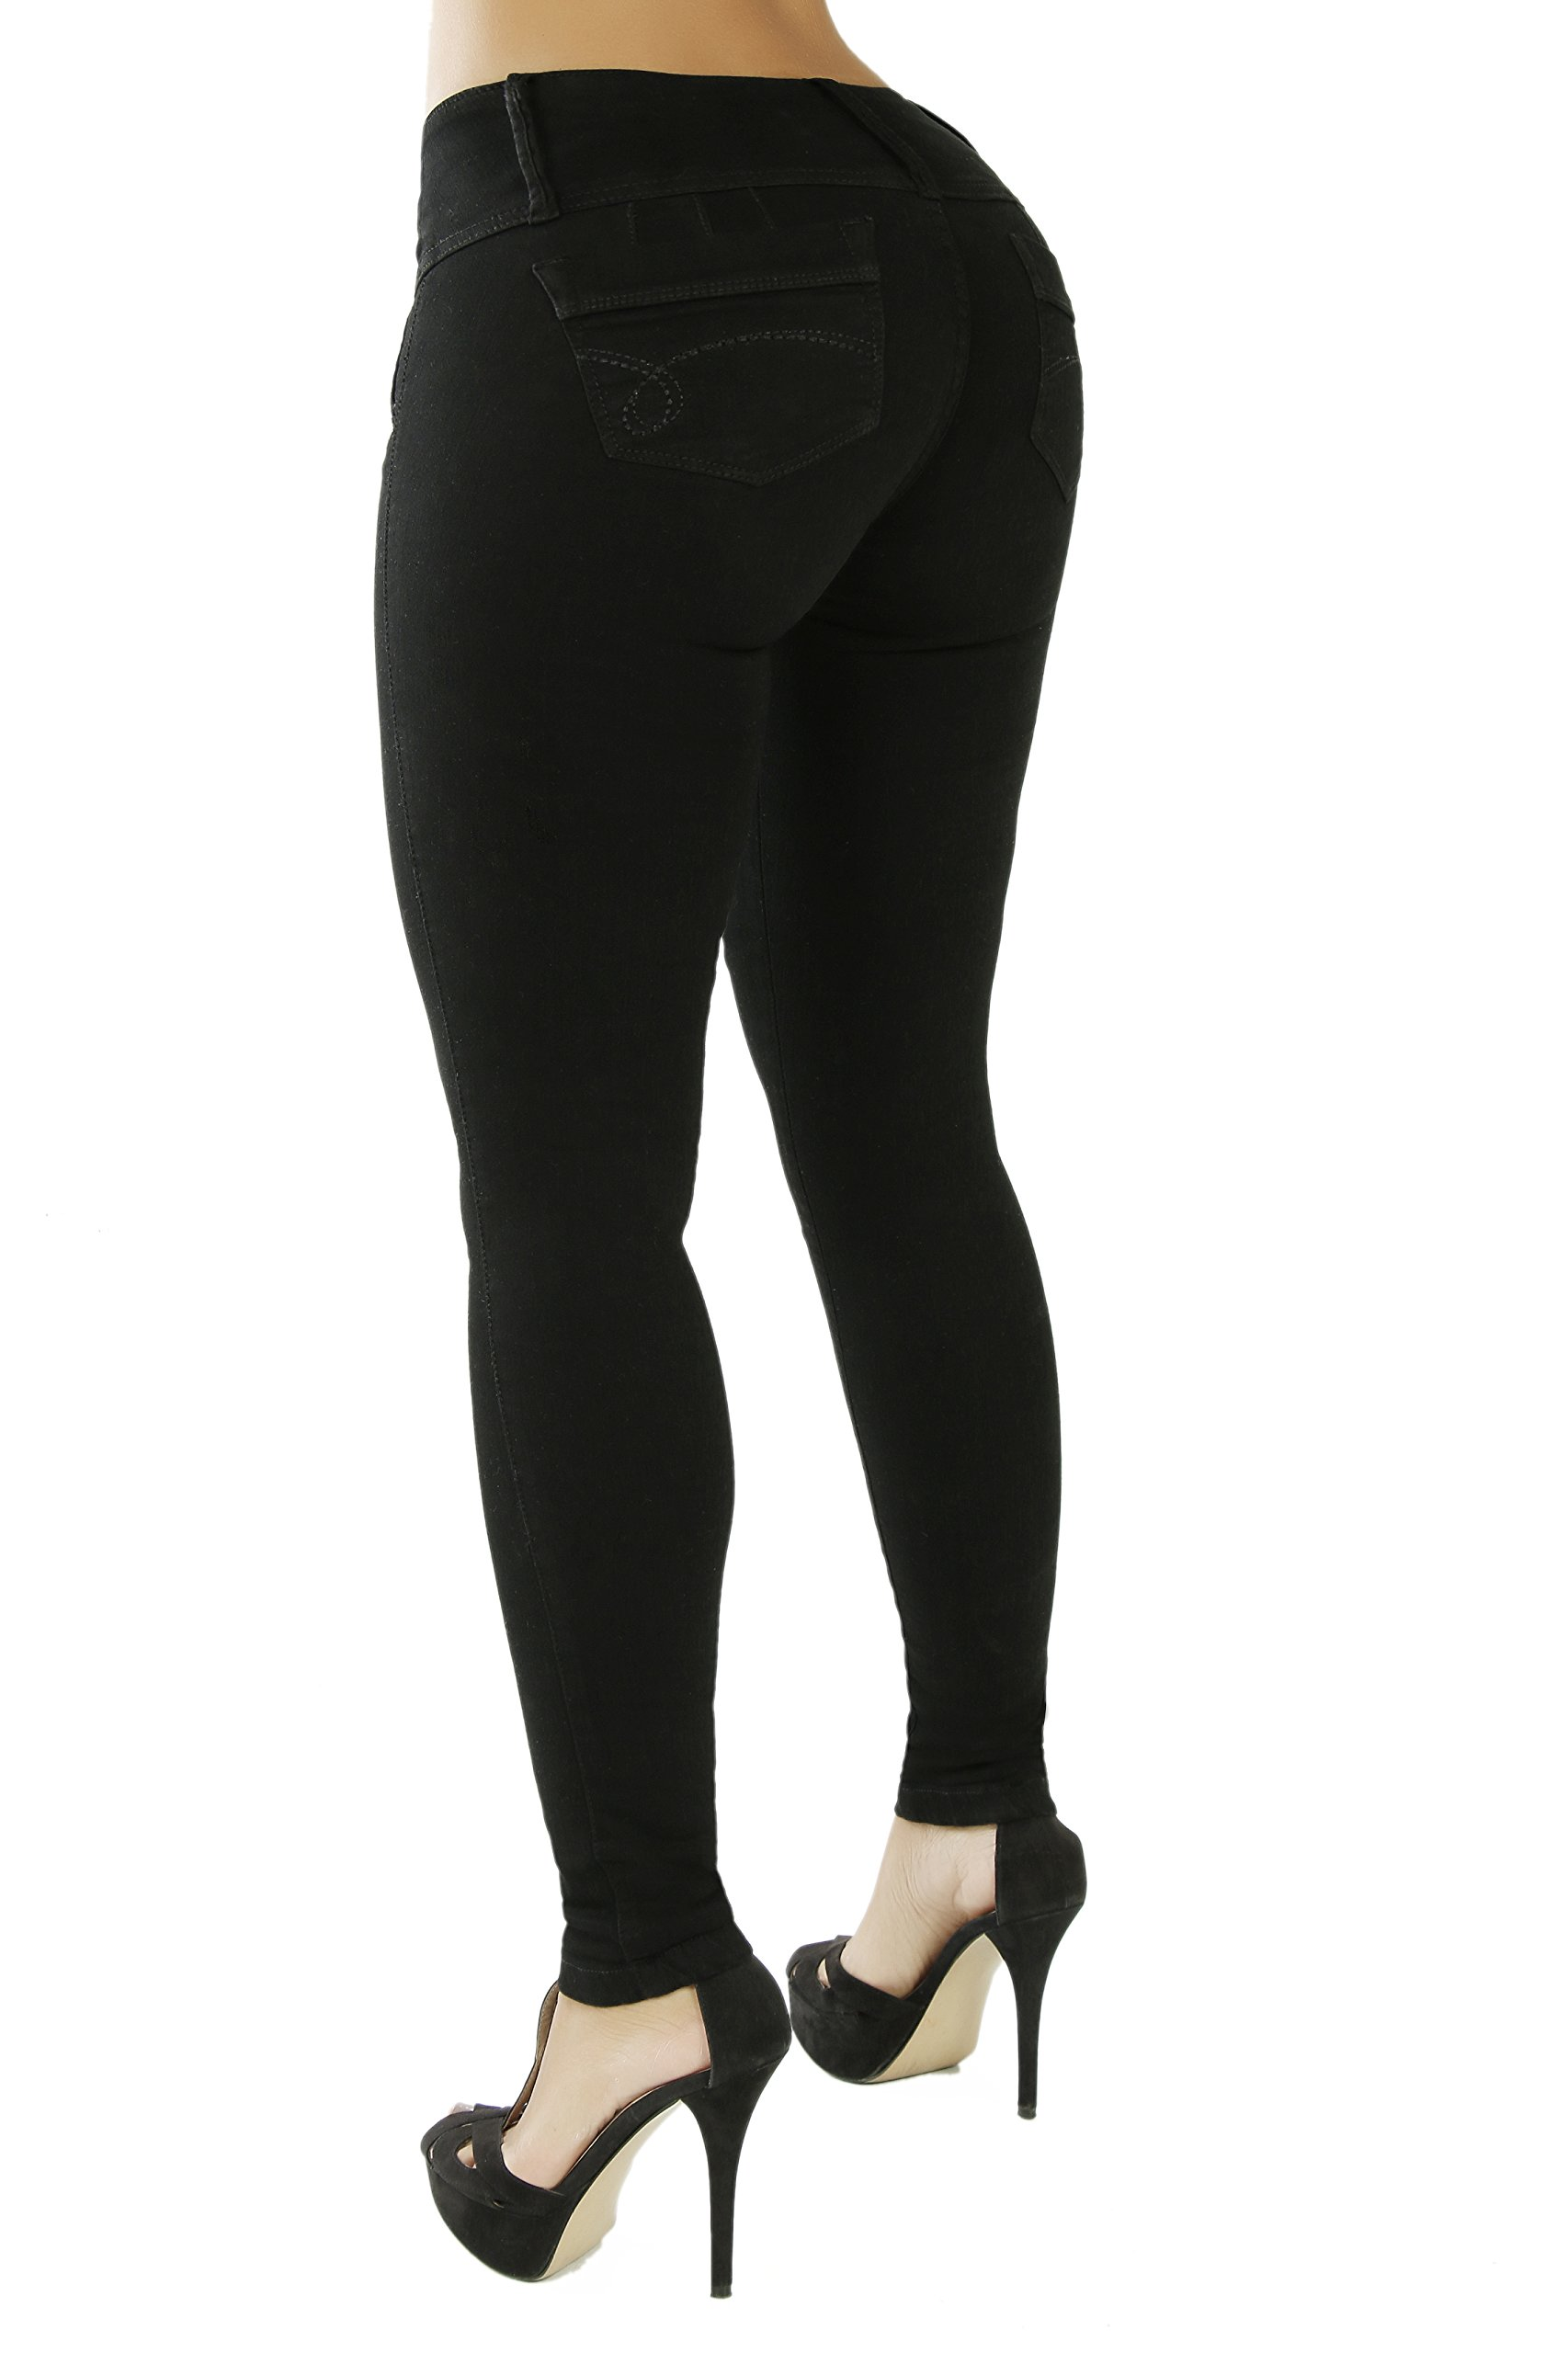 Curvify High Waisted Butt Lifting Slimming Jeans for Women - Skinny Stretch Jean 766(766, Black, 7)